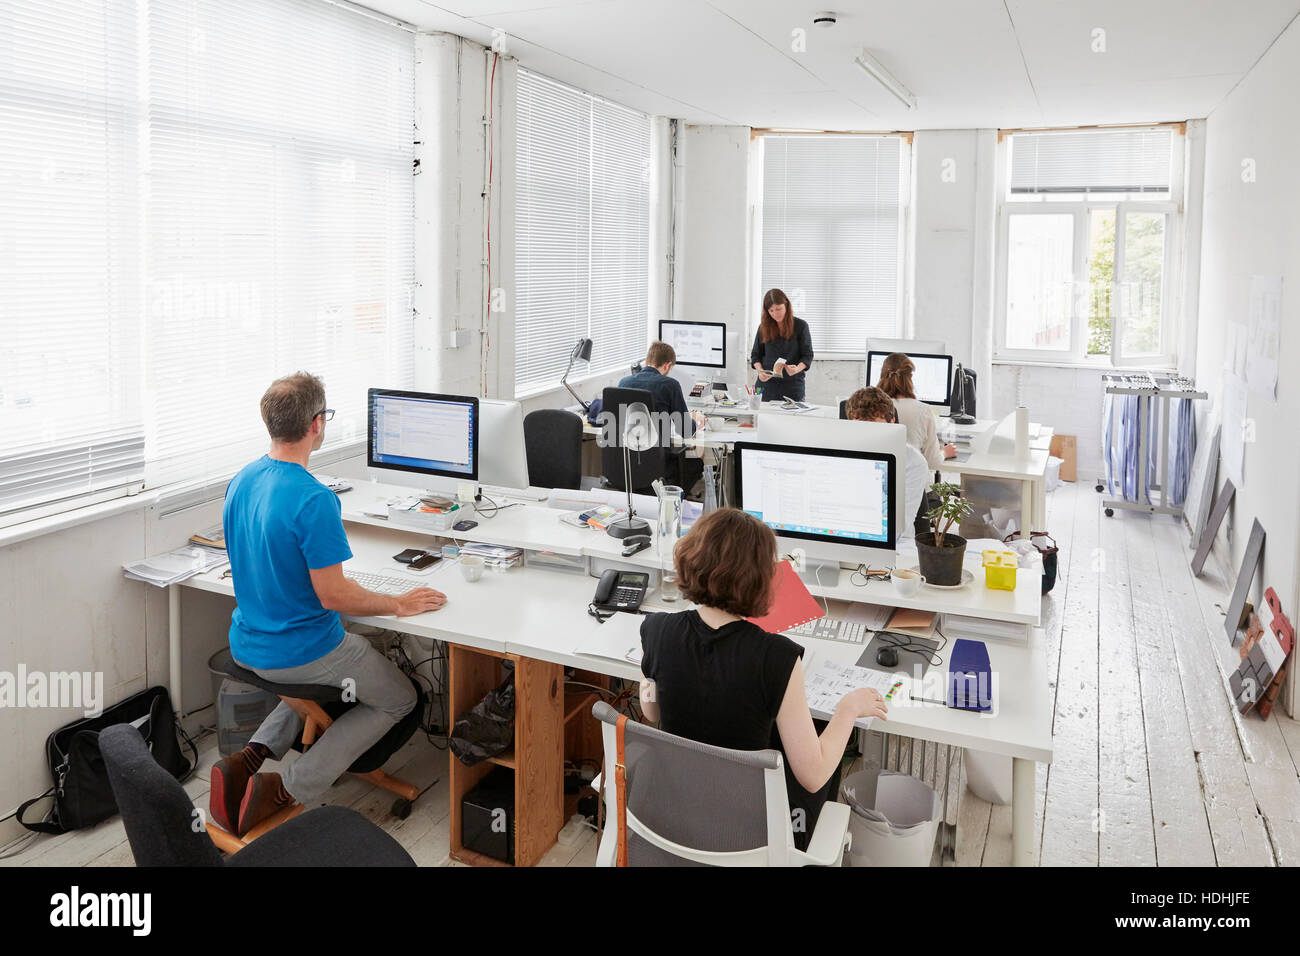 A modern office, workstations for staff. Elevated view of six people seated at desks. A man using an ergonomic kneeler - Stock Image